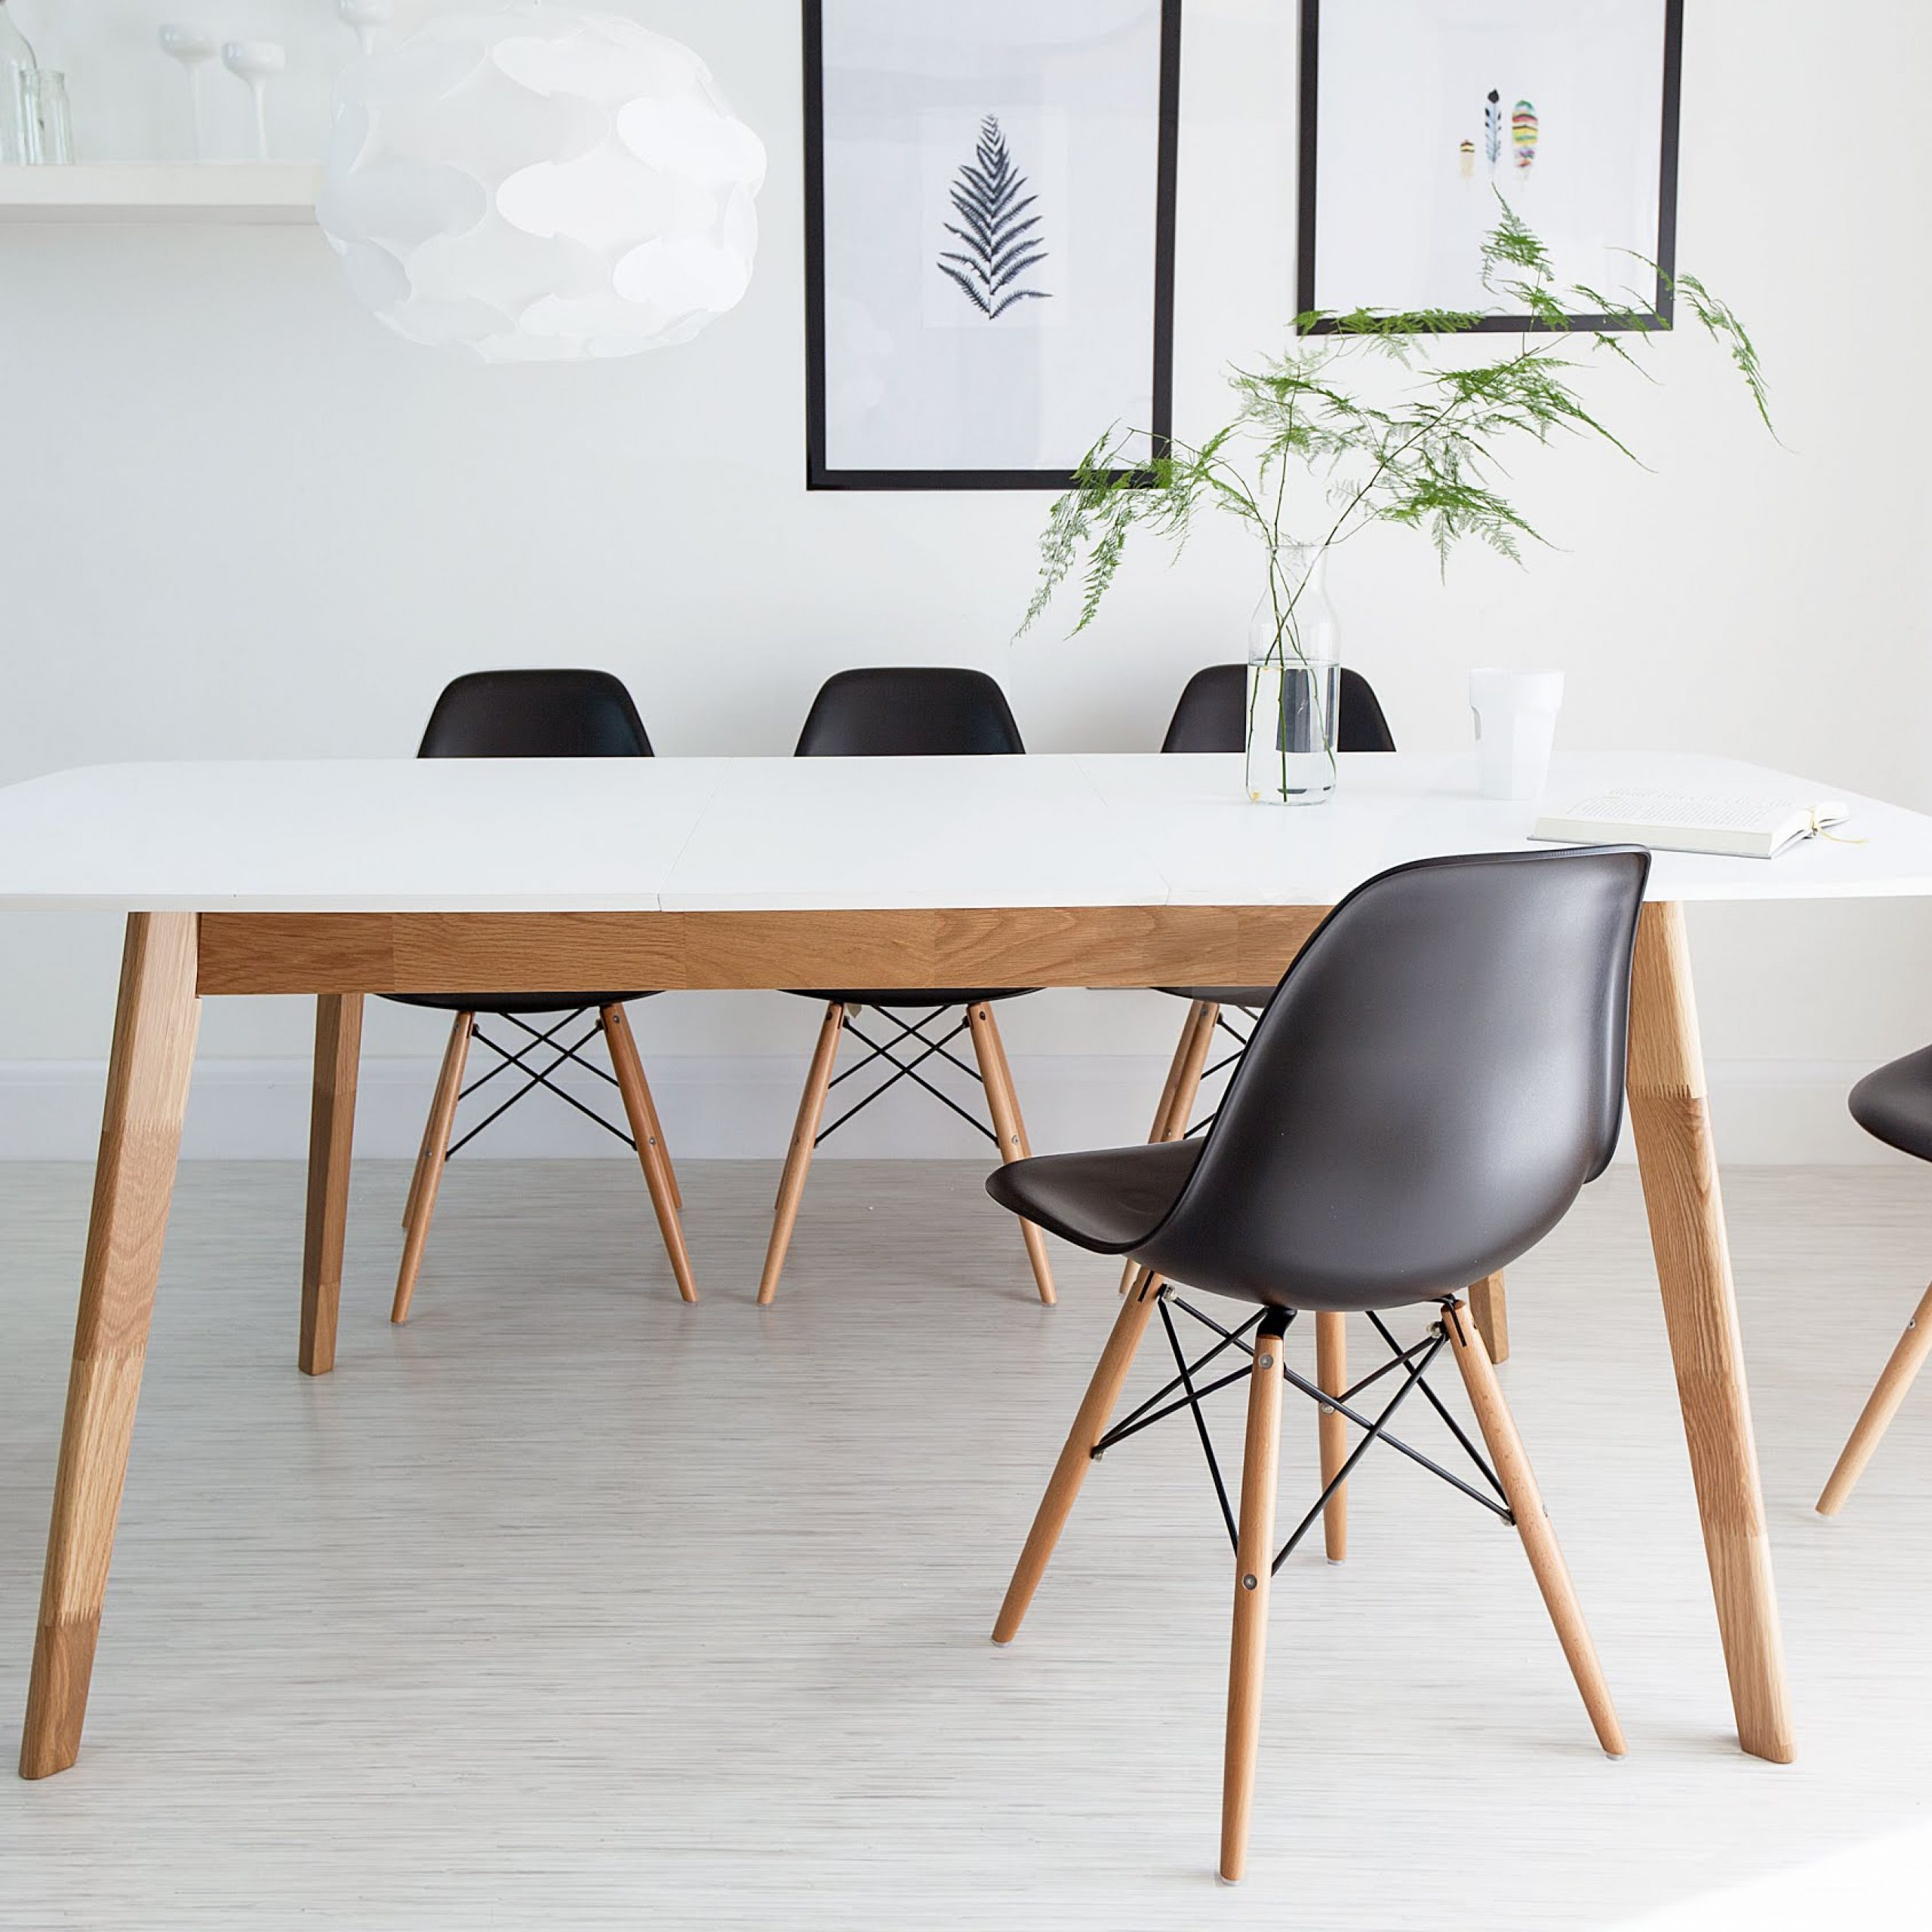 Well Known Elegant Eames Style Dining Table – Creative Design Ideas Intended For Eames Style Dining Tables With Wooden Legs (View 2 of 16)